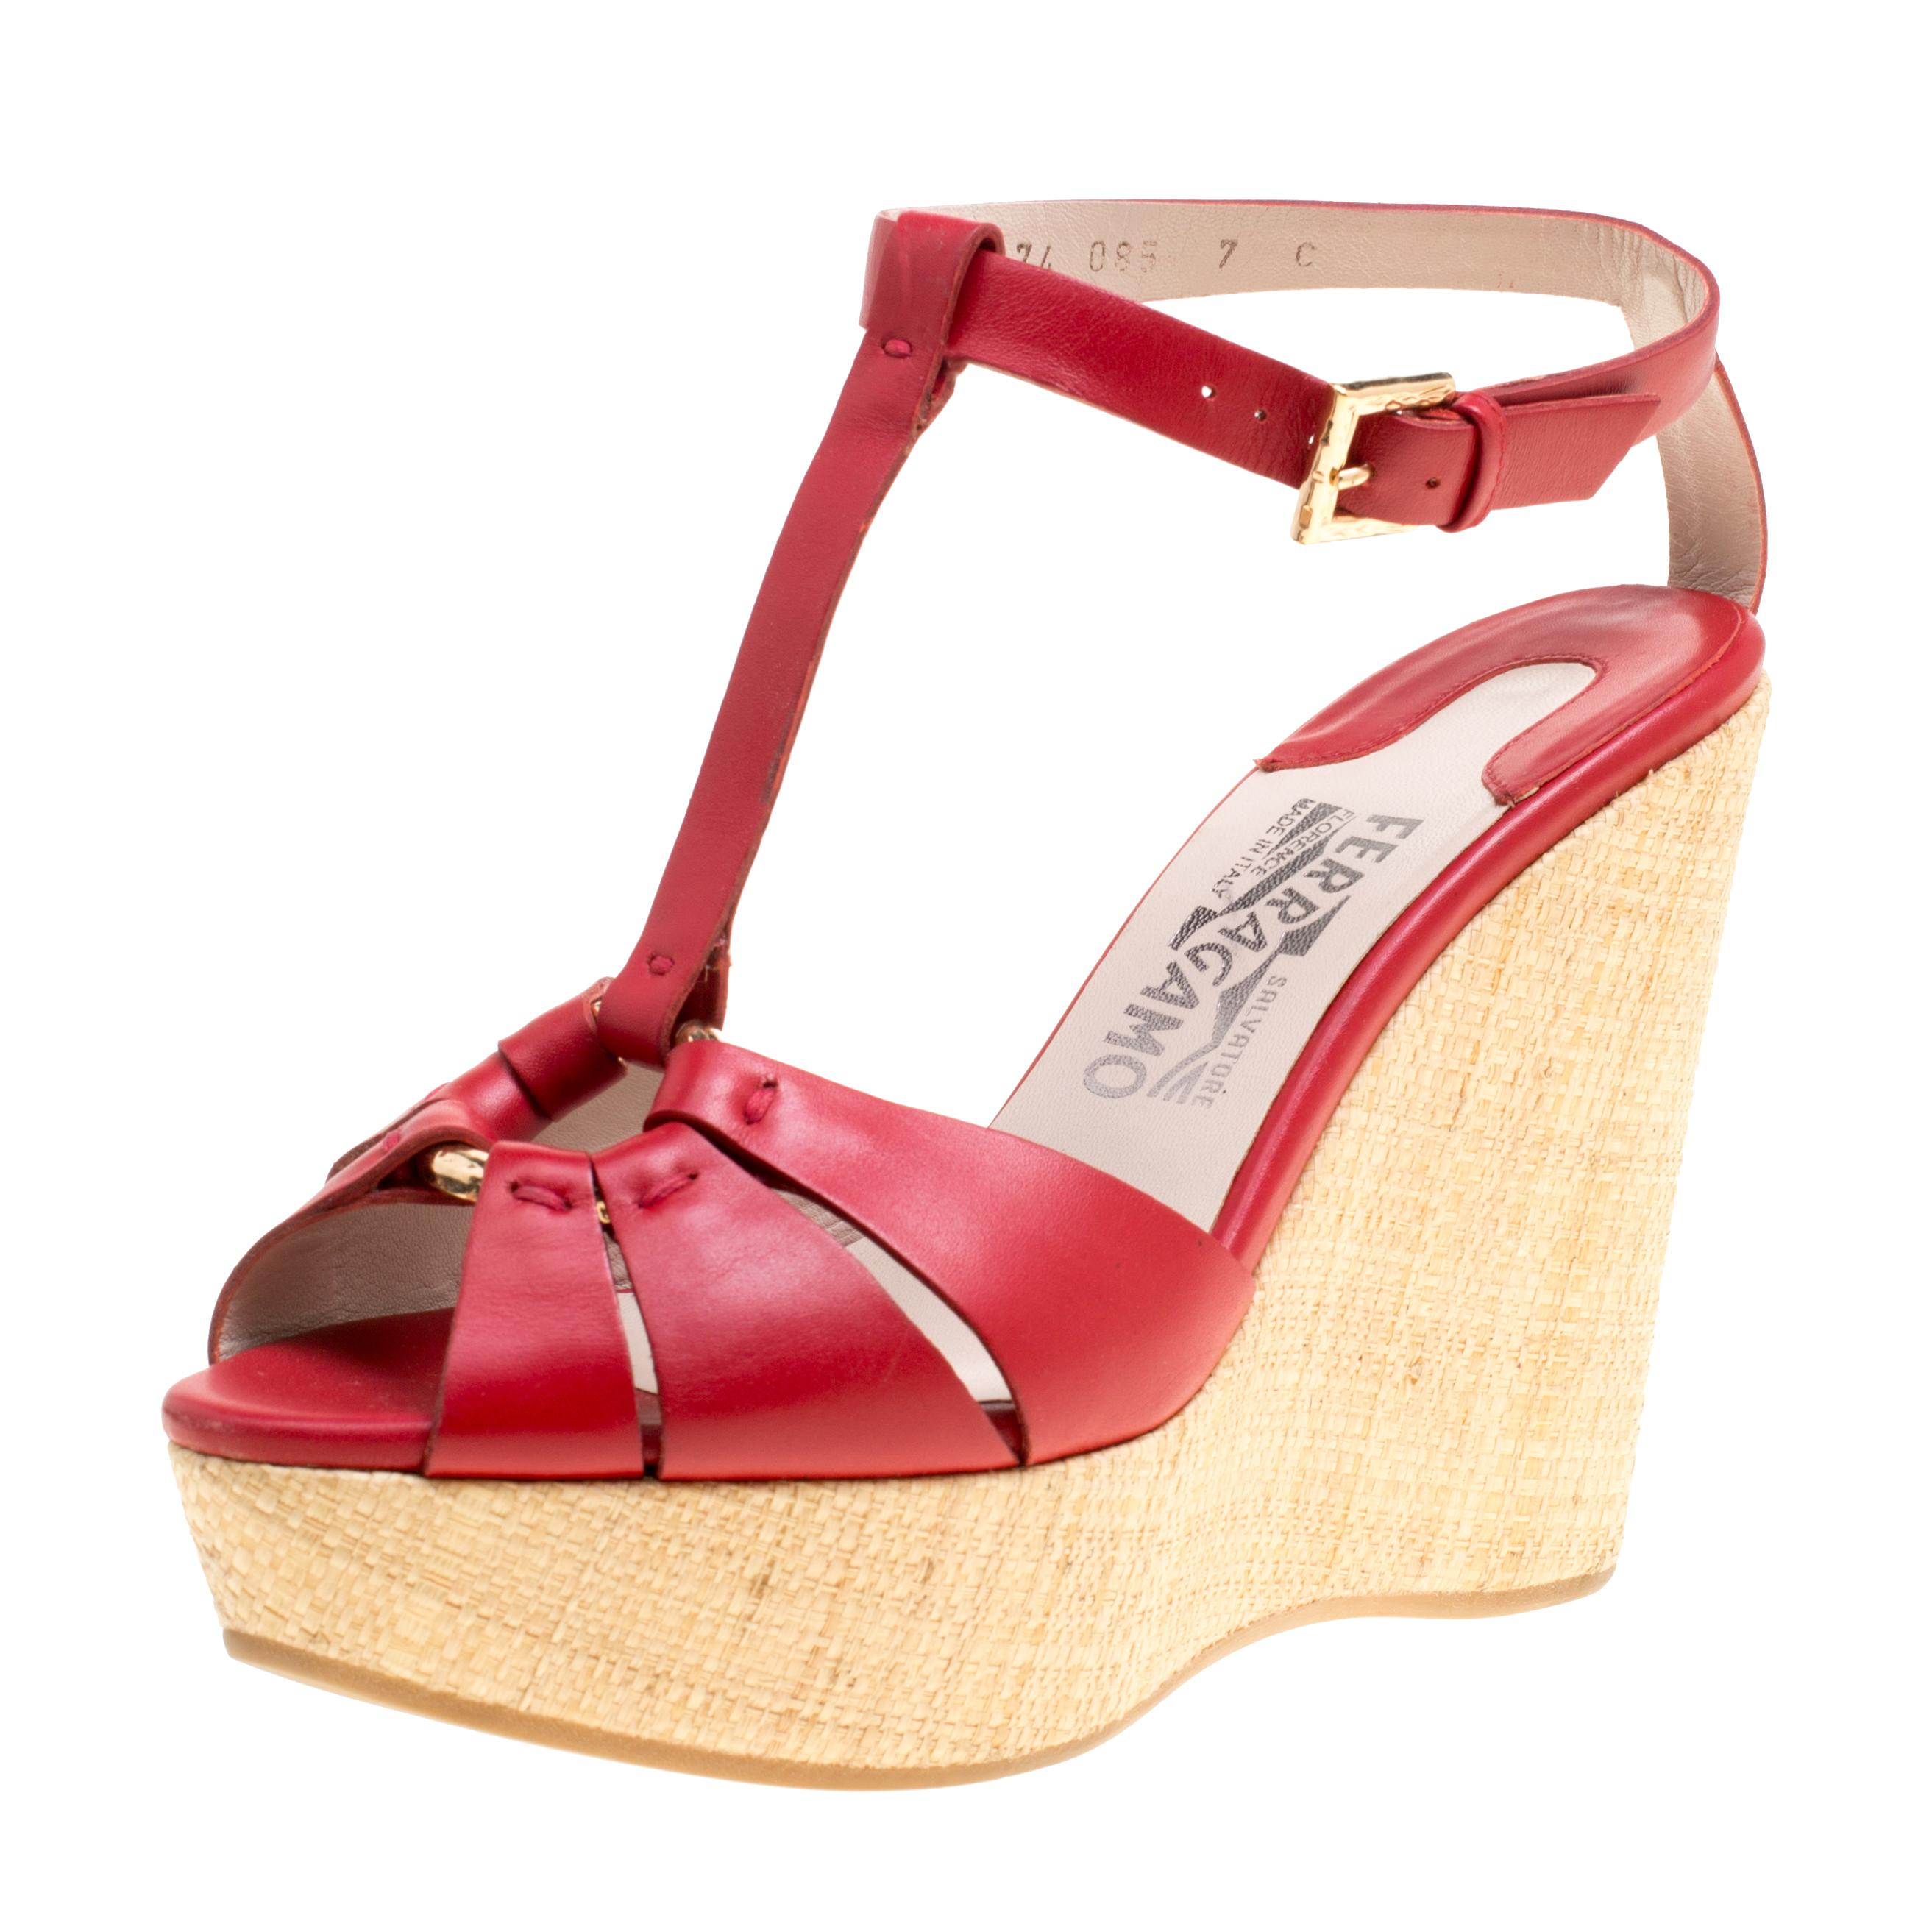 651e4a8c6d7d Lyst - Ferragamo Leather T-strap Platform Wedge Sandals in Red